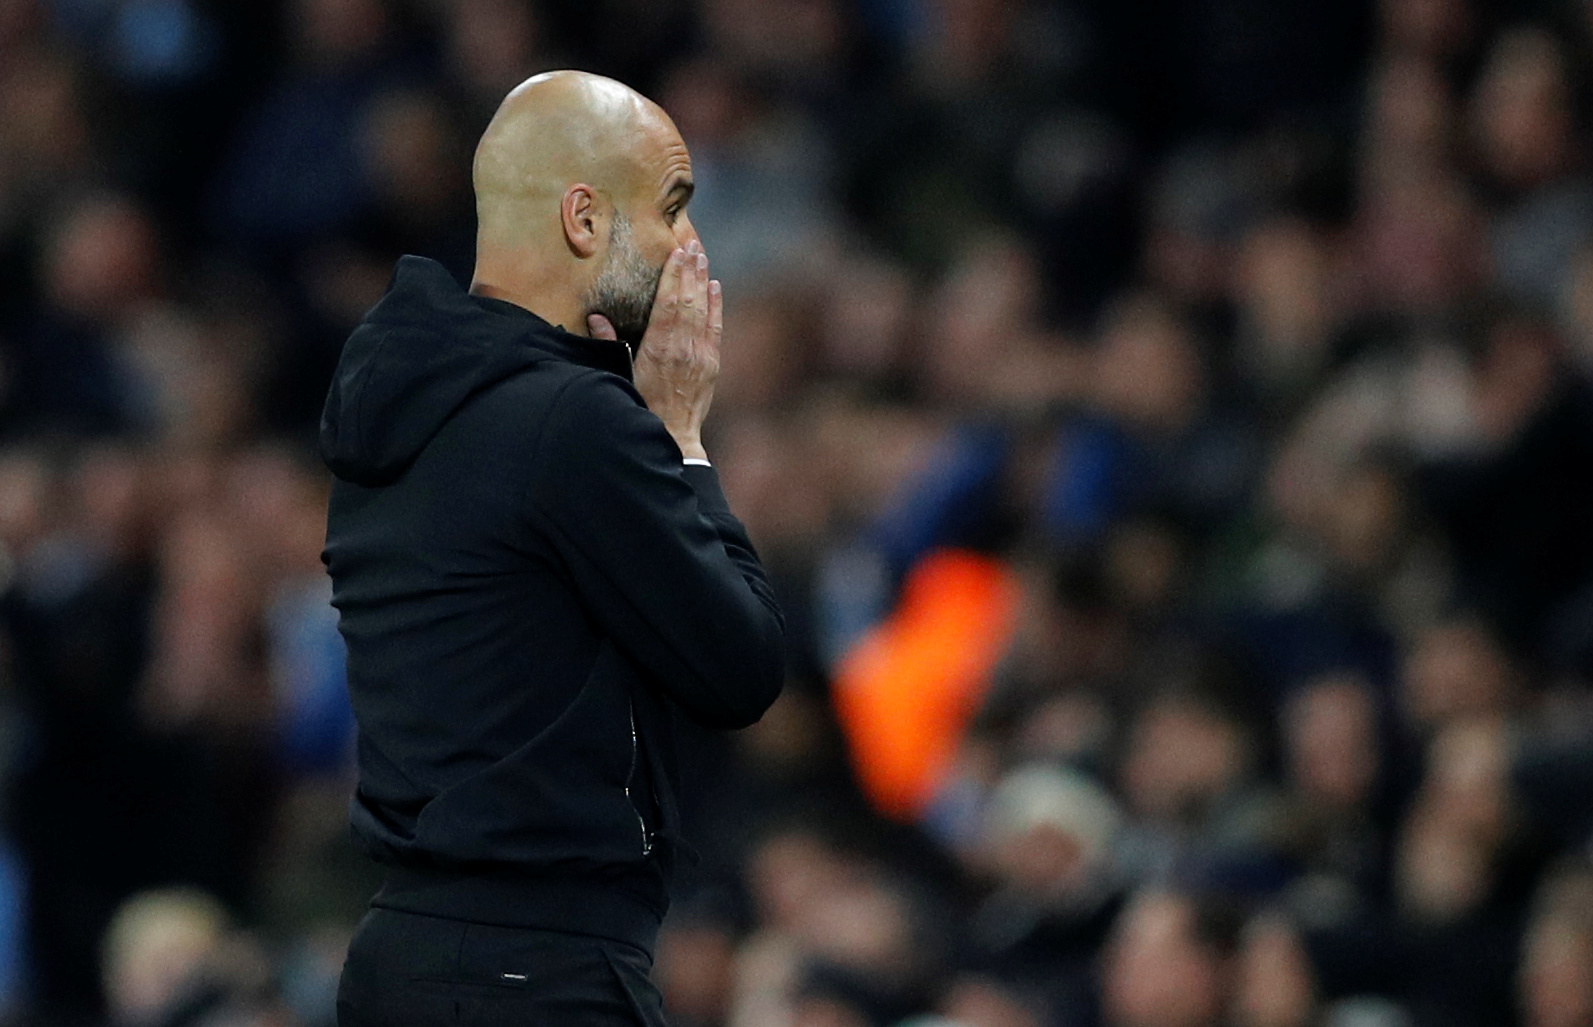 Guardiola admits Man City must recover 'mentally' to execute remaining PL games